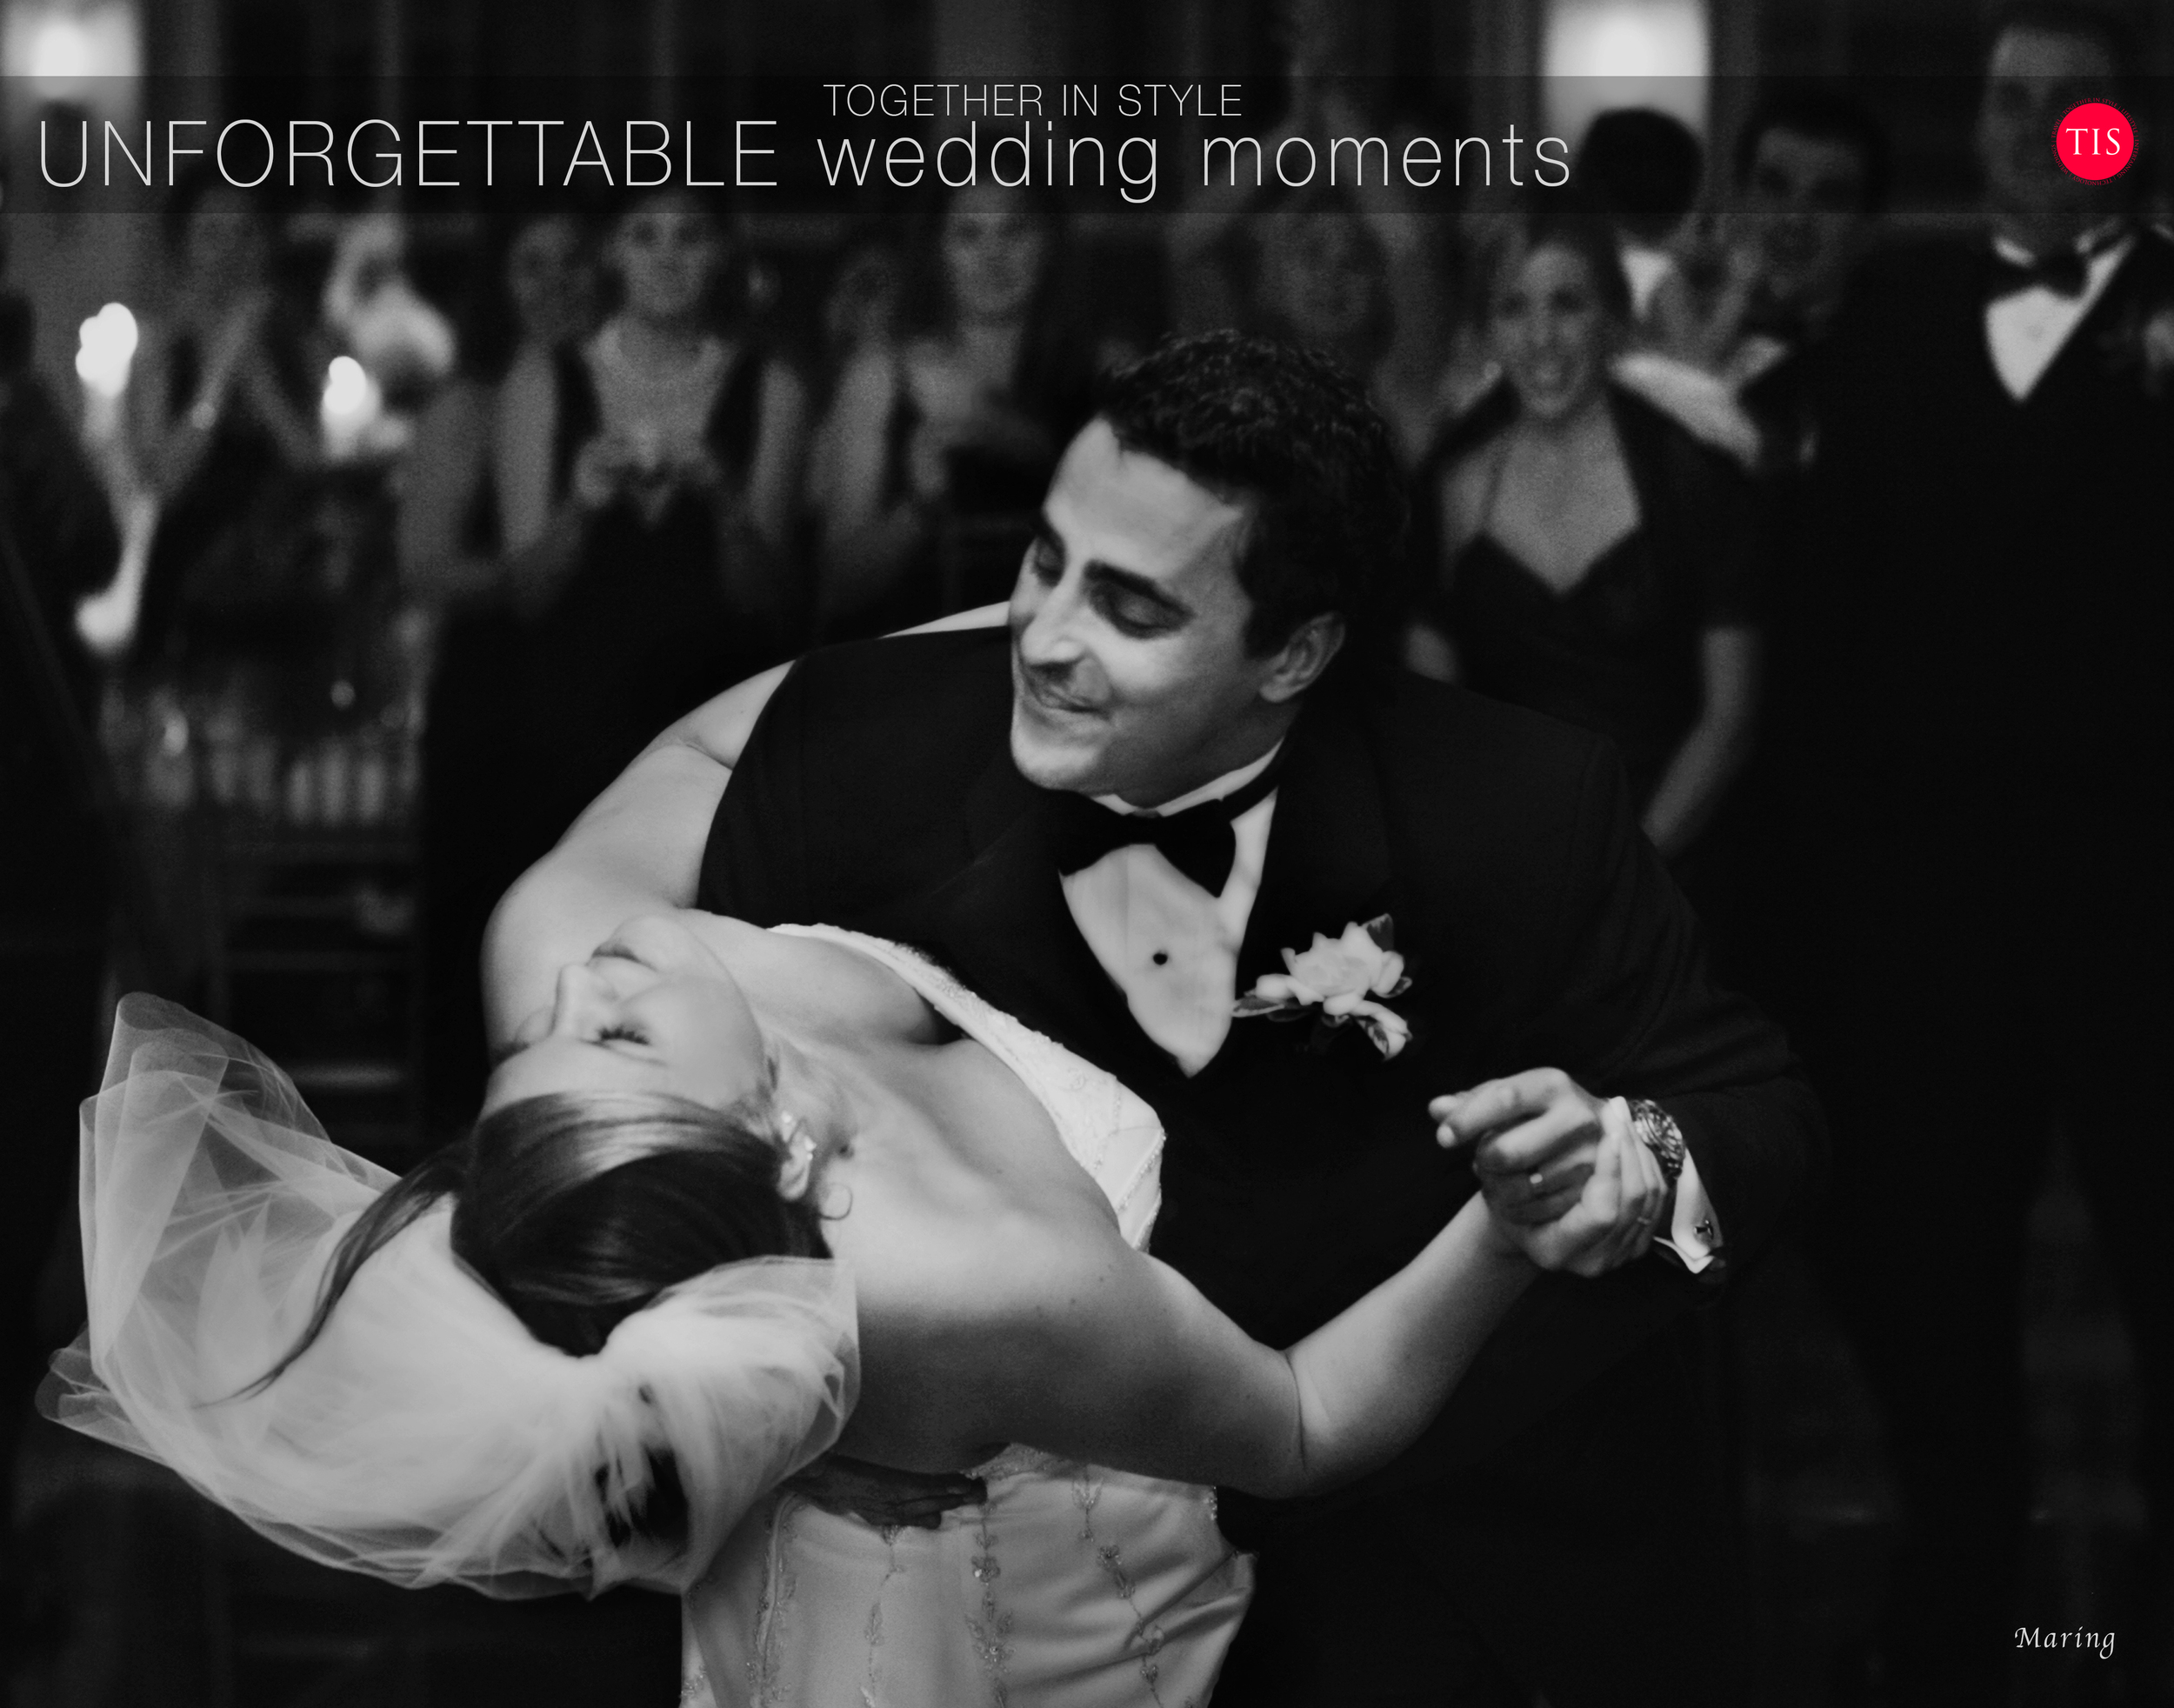 The groom dips the bride at the end of their first dance at a  wedding at The waterview in Monroe, CT  captured perfectly by photographer Charles Maring of  Maring Visuals .